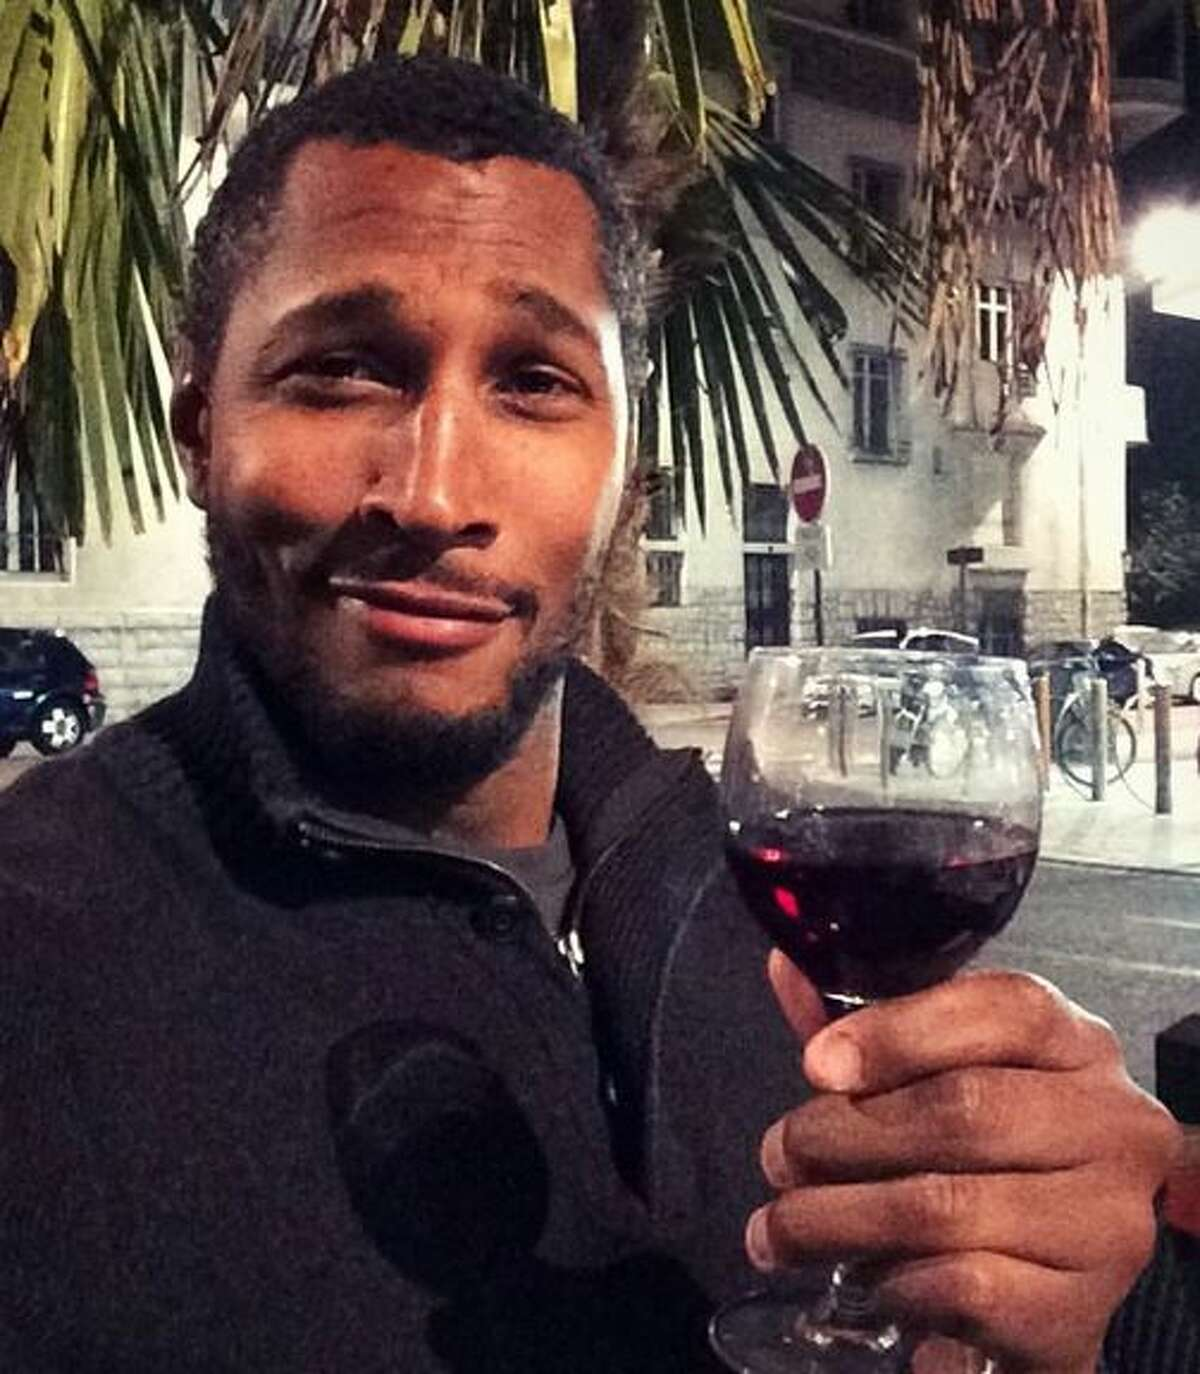 Boris Diaw - 'Fat' and healthy Diaw was allowed to miss the first week of training camp after leading France to third place at the FIBA World Cup in Spain. Naturally, this resulted in some good-natured ribbing from the team. Dan McCarney reported that Gregg Popovich joked on media day that the Spurs started a pool on Diaw's weight, with the minimum bet starting at 275 pounds.